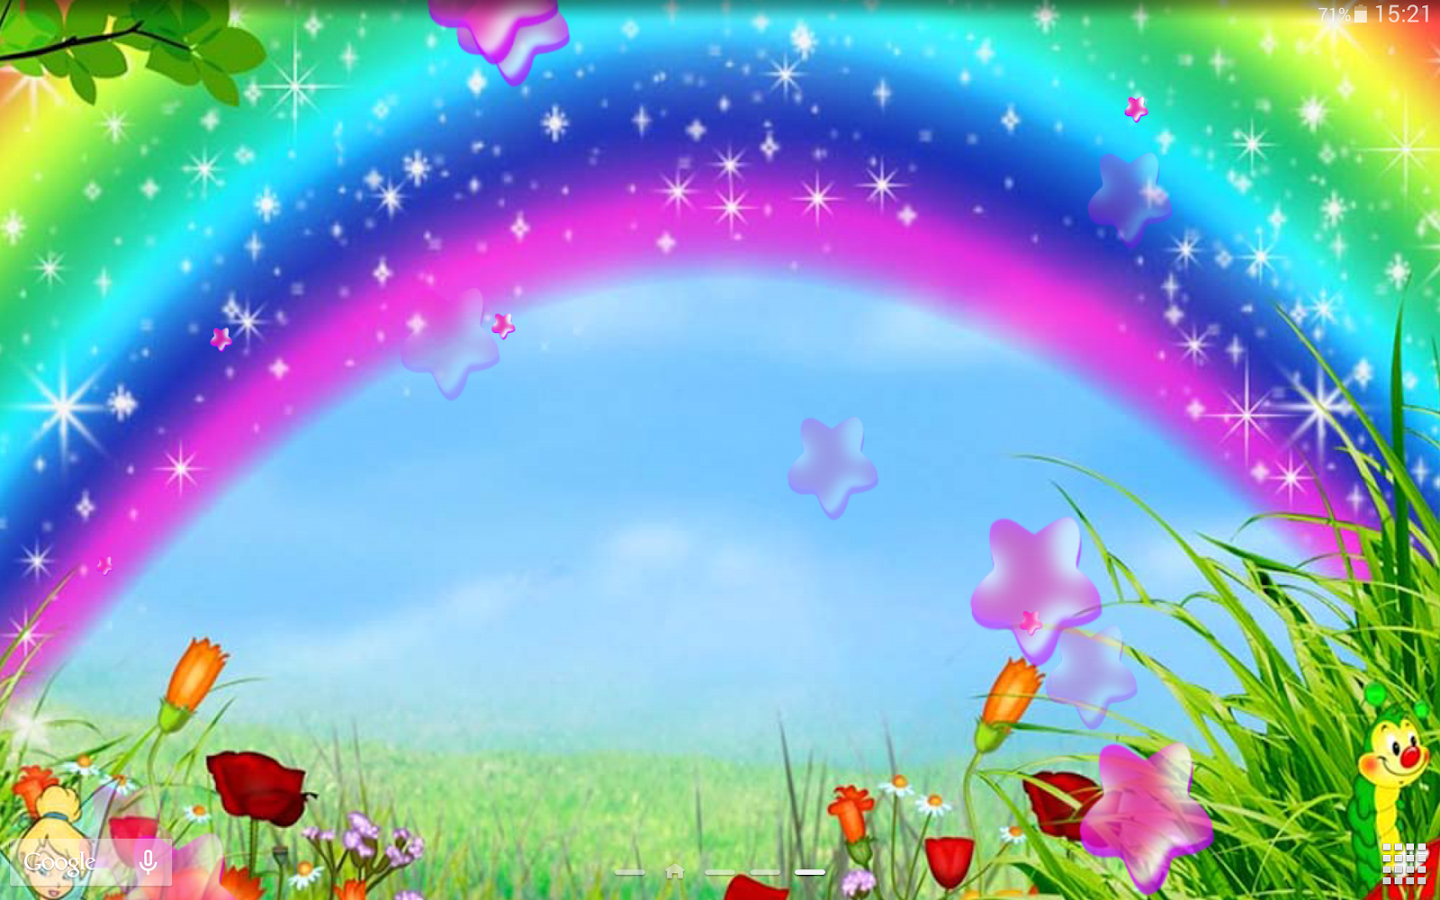 Cute Rainbow Live Wallpaper - Android Apps on Google Play Cute Rainbow Wallpapers